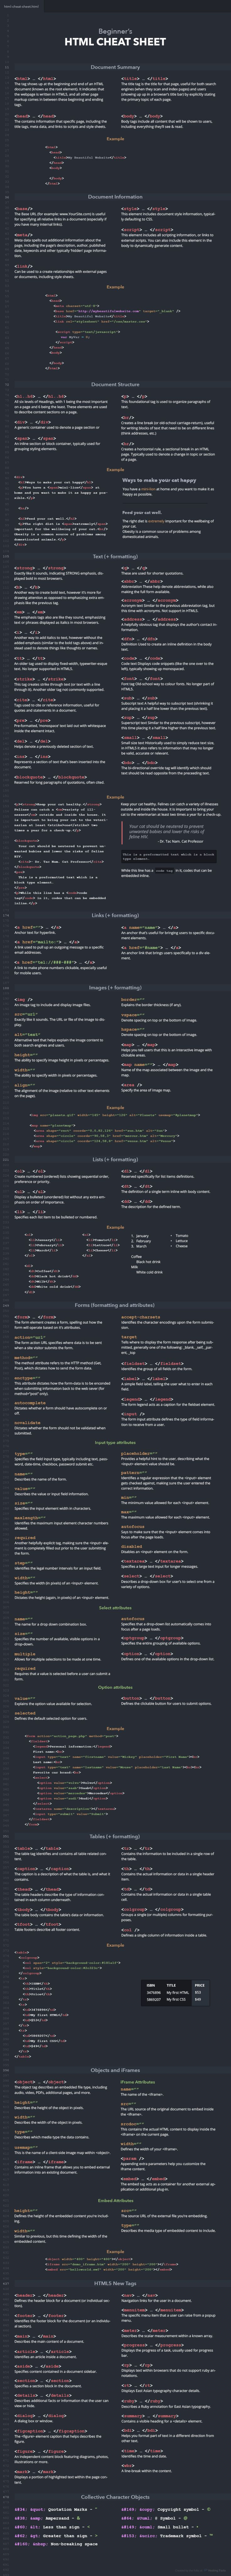 HTML Cheat Sheet for Beginners - #infographic